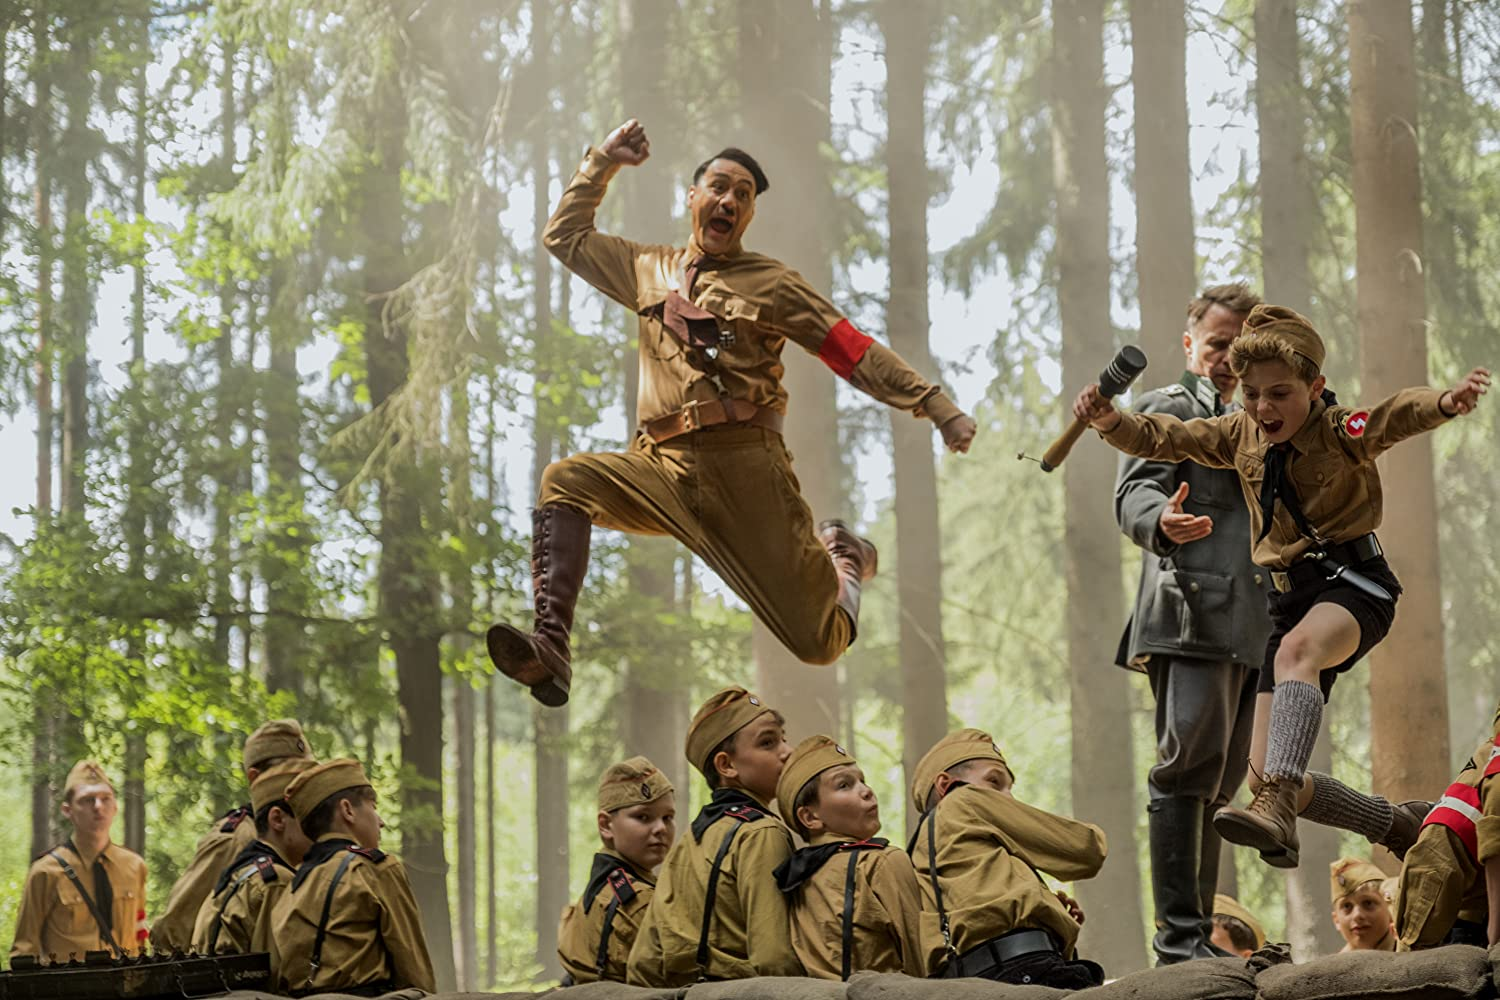 Sam Rockwell, Taika Waititi, and Roman Griffin Davis in Jojo Rabbit (2019)